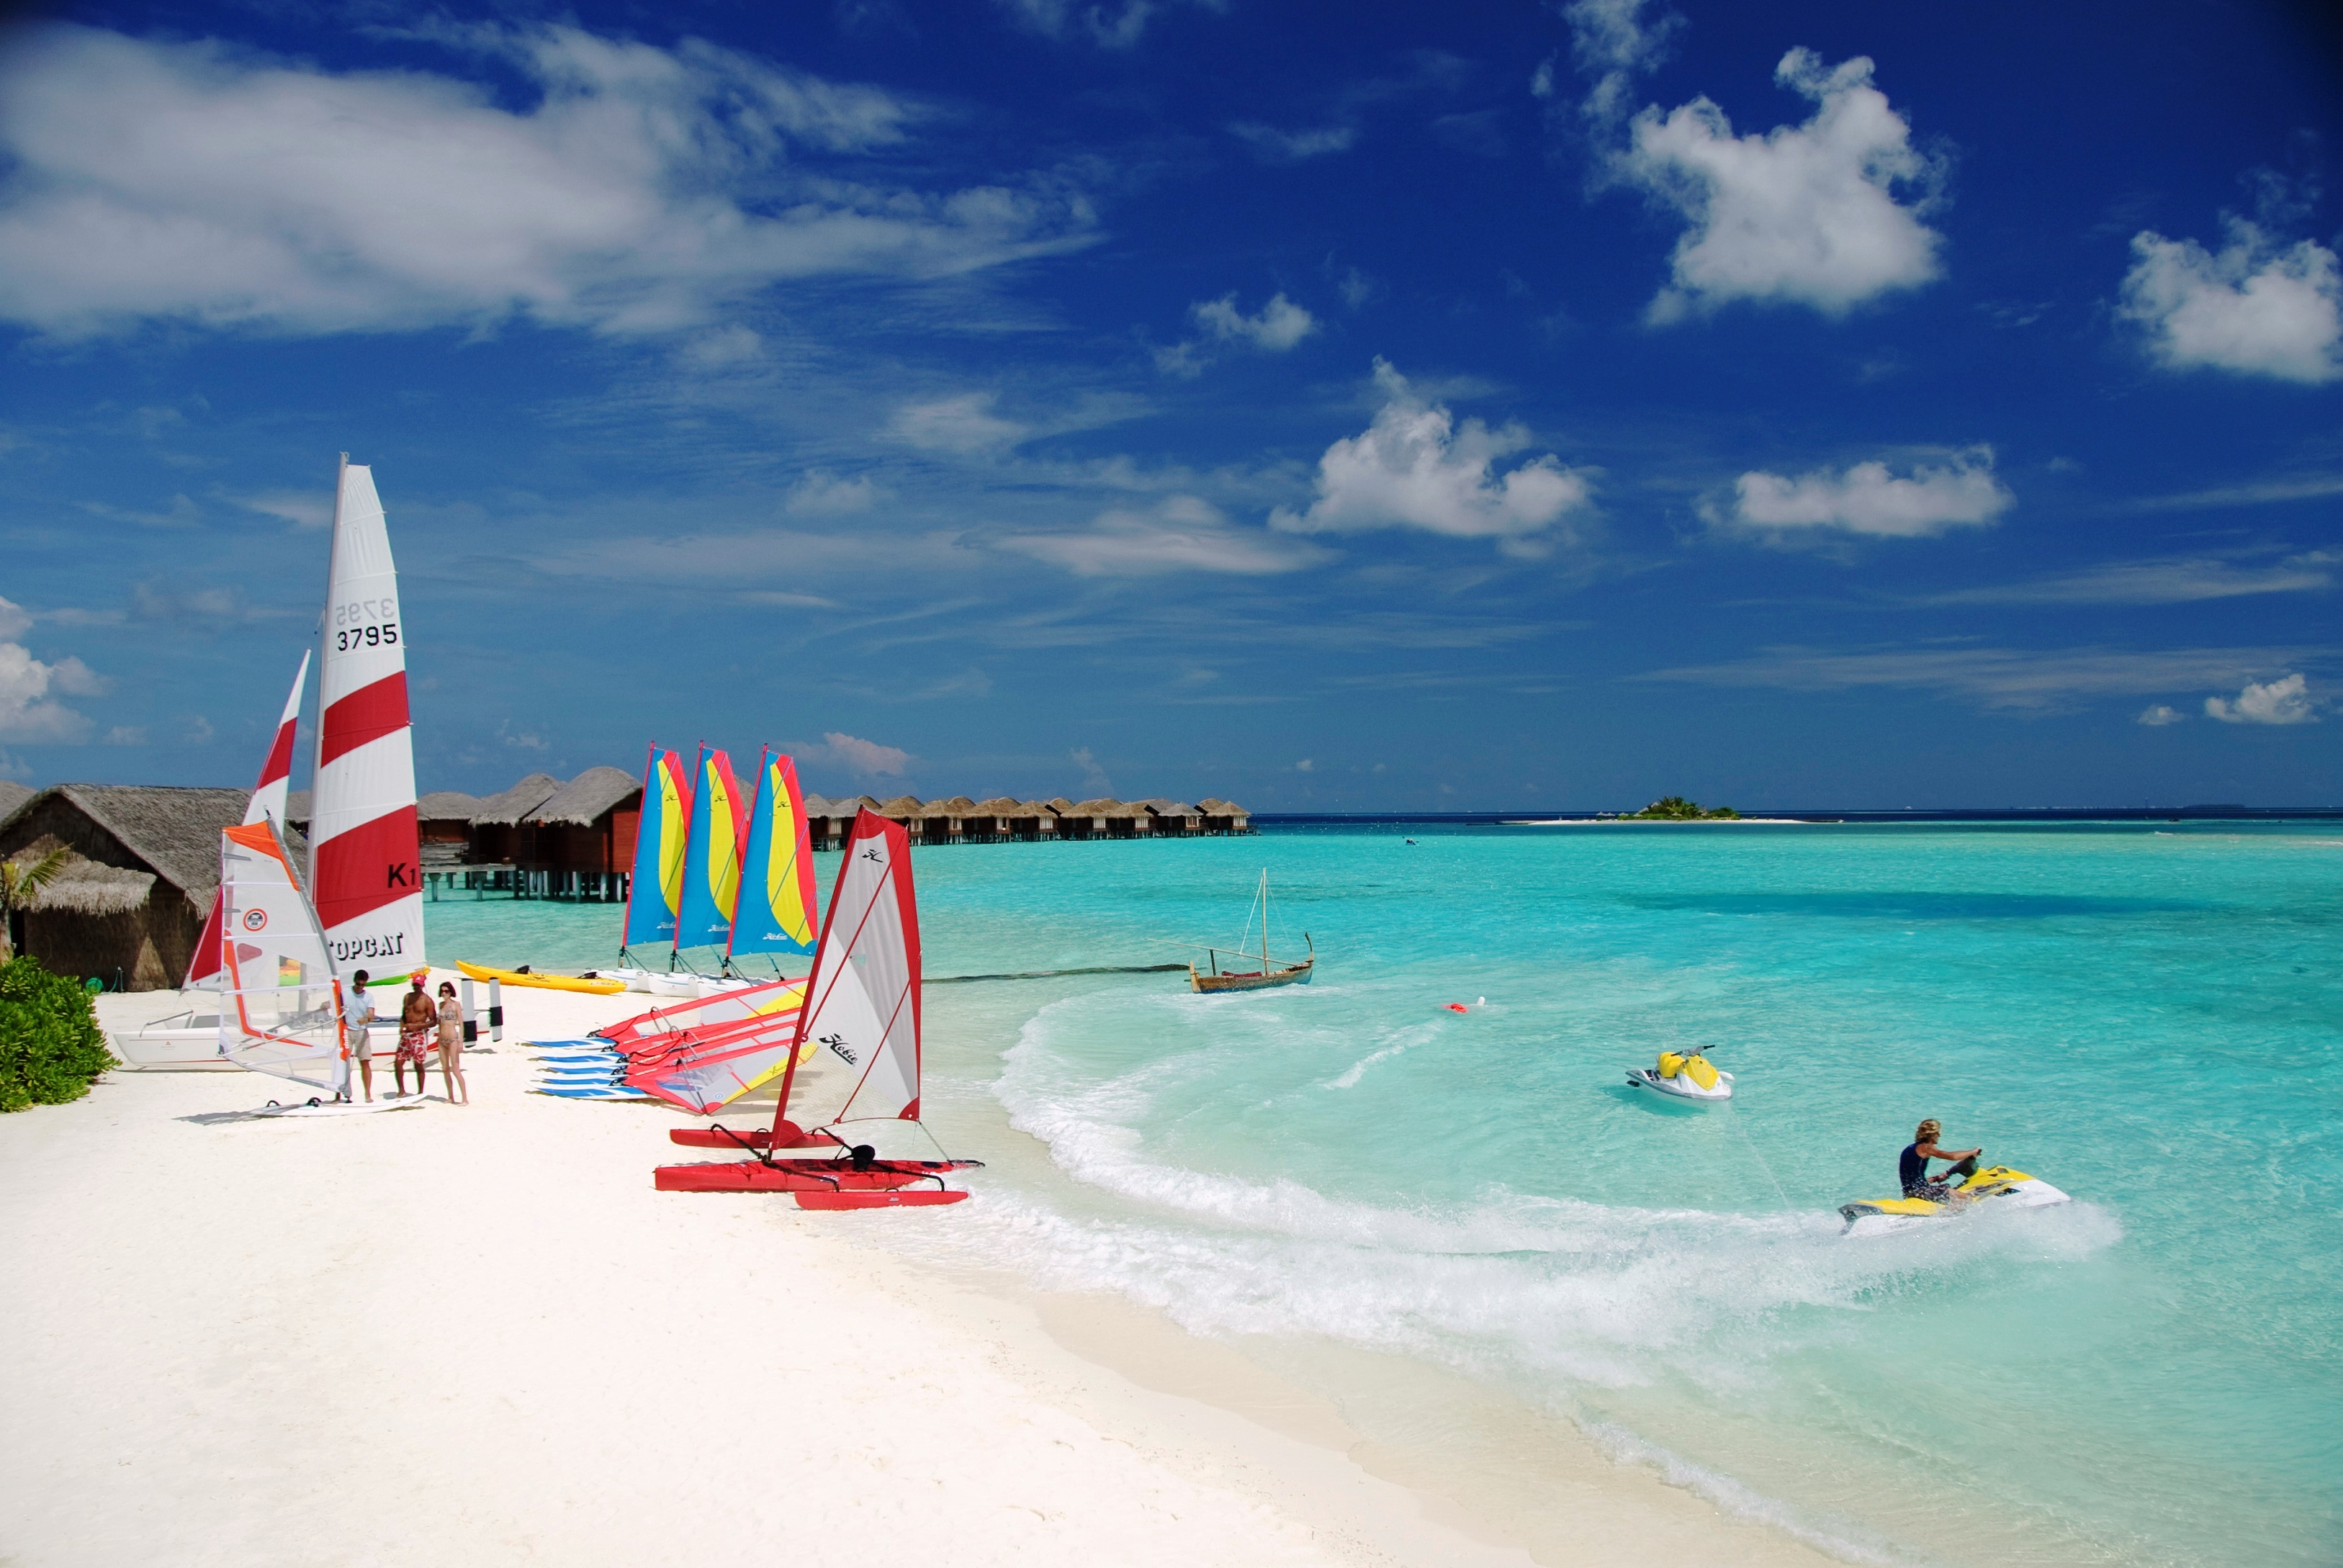 119534 free wallpaper 720x1520 for phone, download images Nature, Beach, Yachts, Tropics, Maldives 720x1520 for mobile